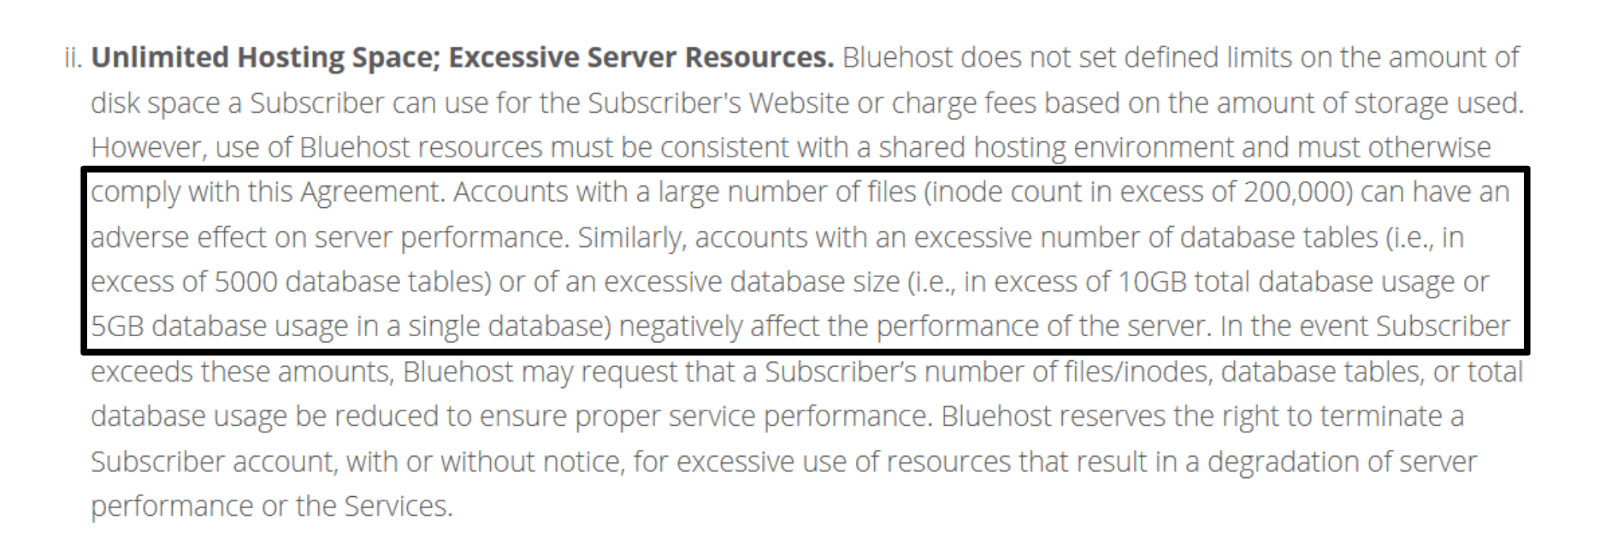 Bluehost terms of service - unlimited hosting space and excessive server resources